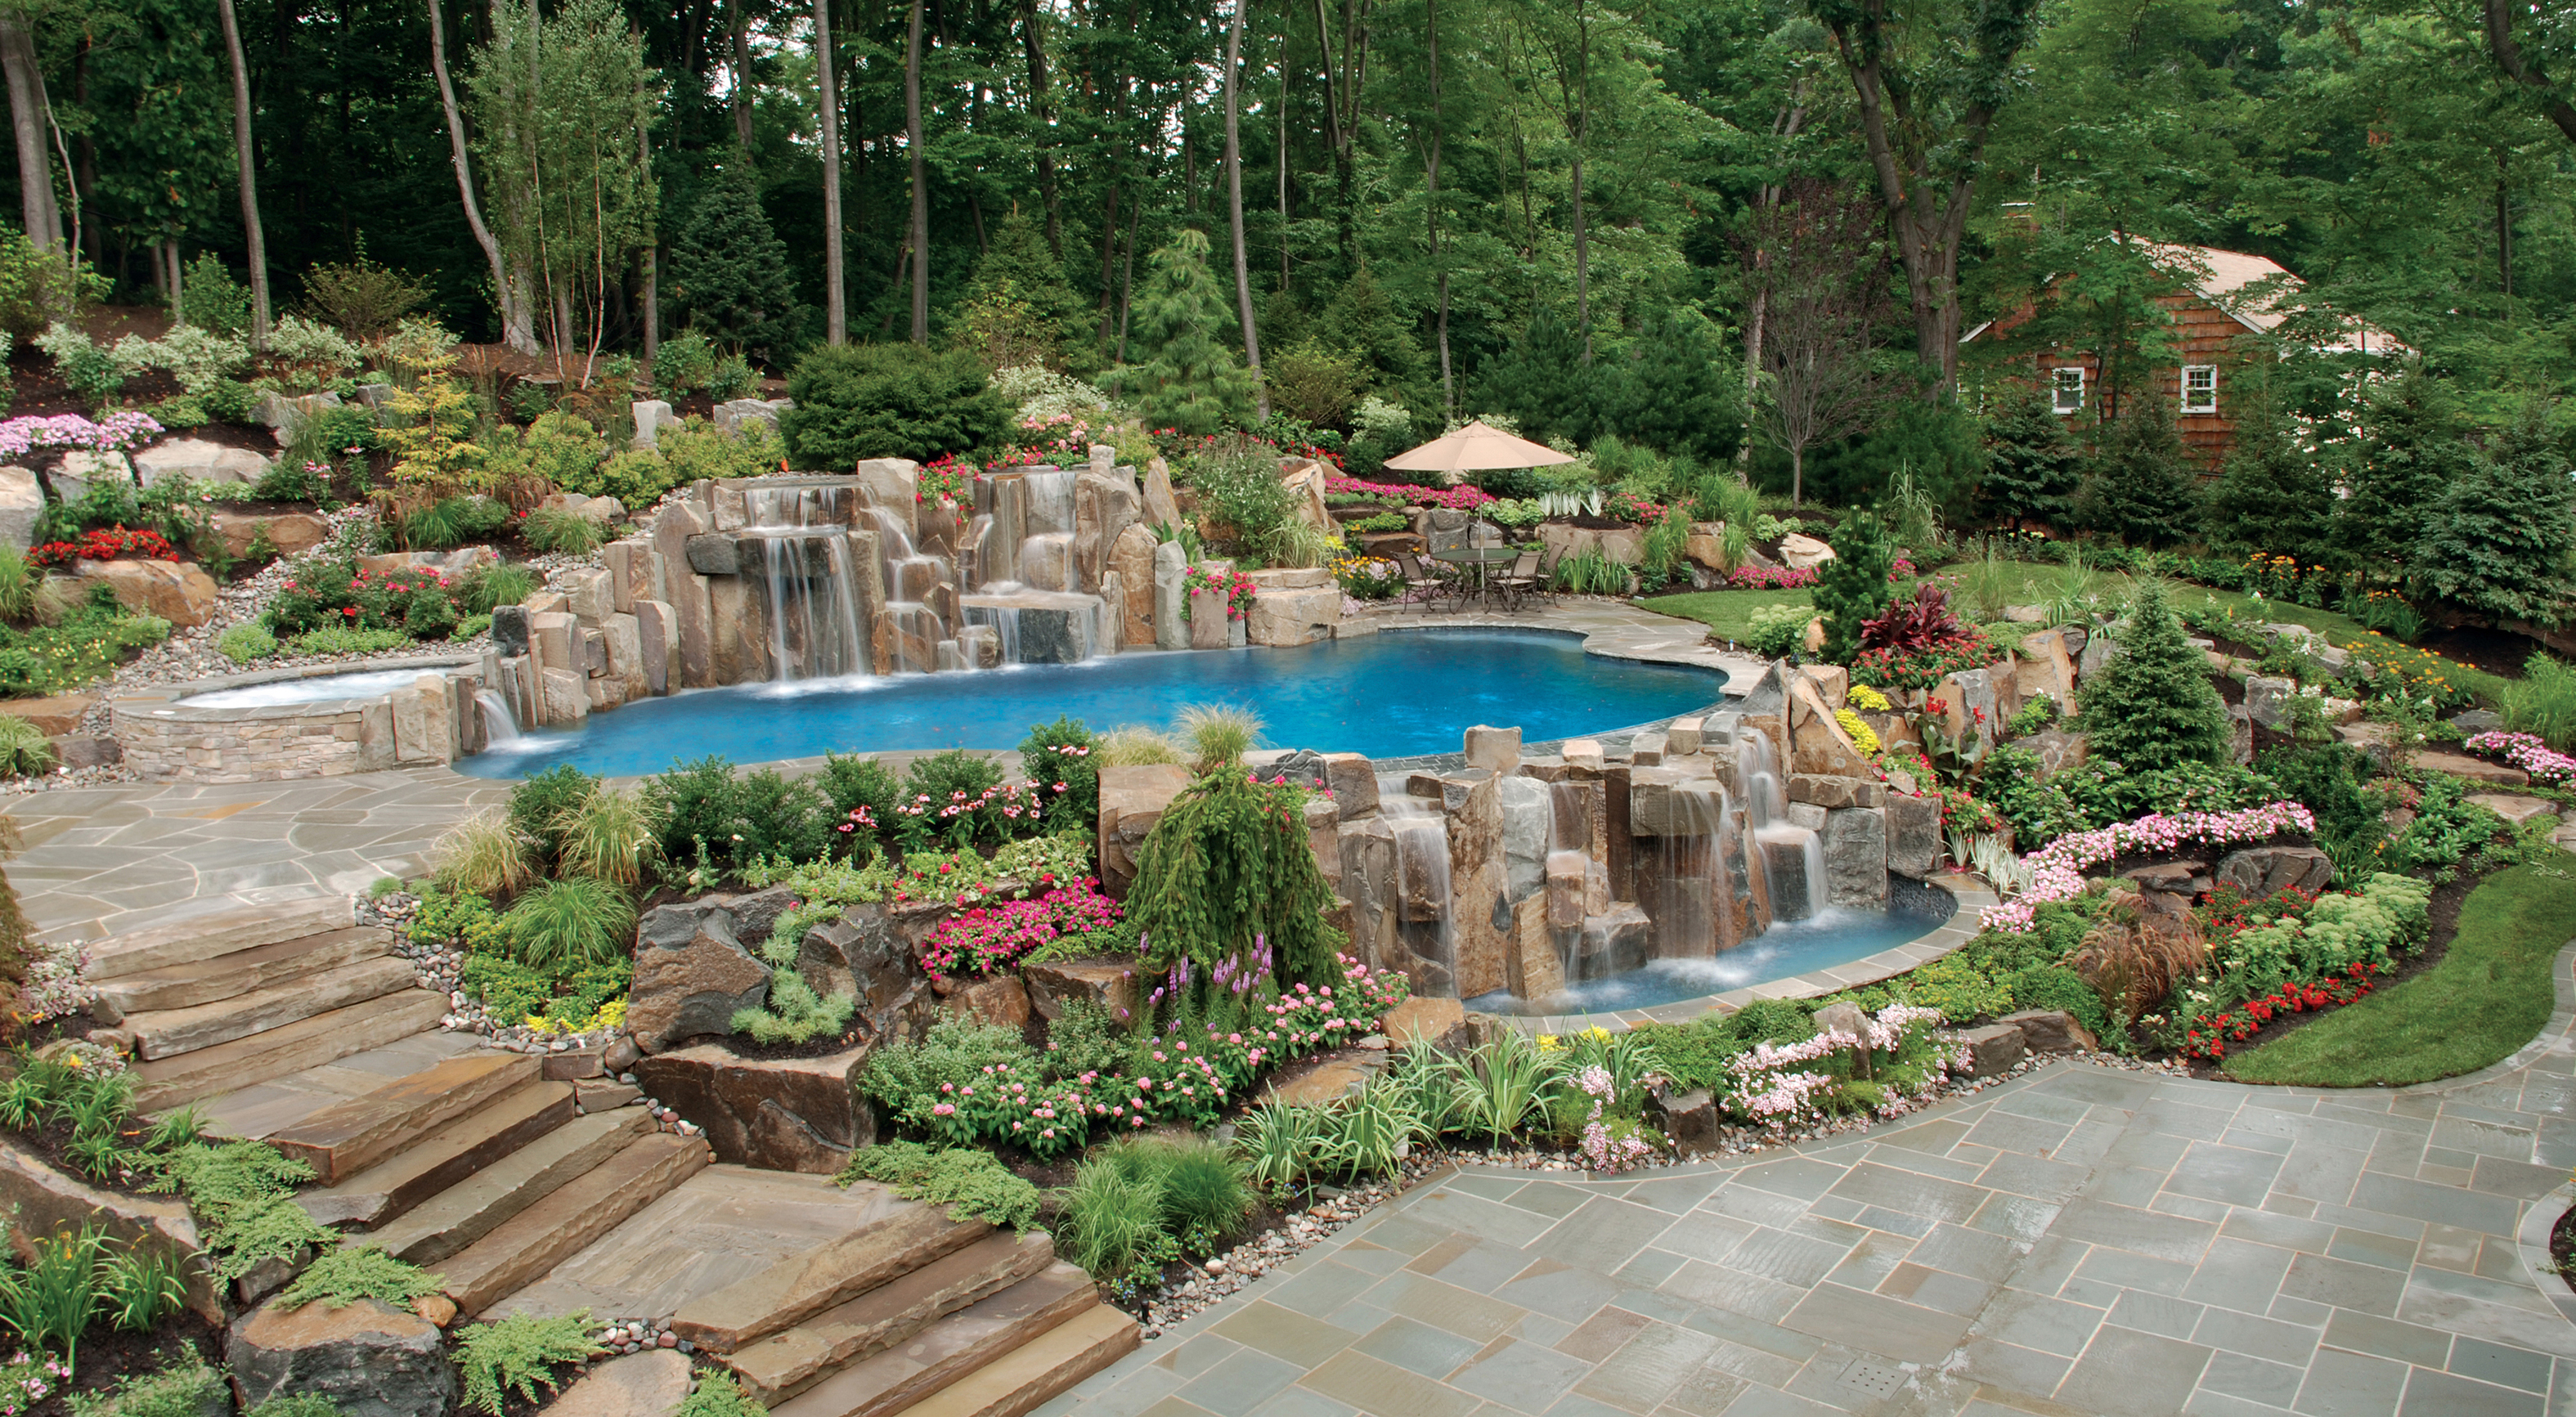 Backyard Hardscape Designs Large And Beautiful Photos Photo To - Backyard hardscape ideas